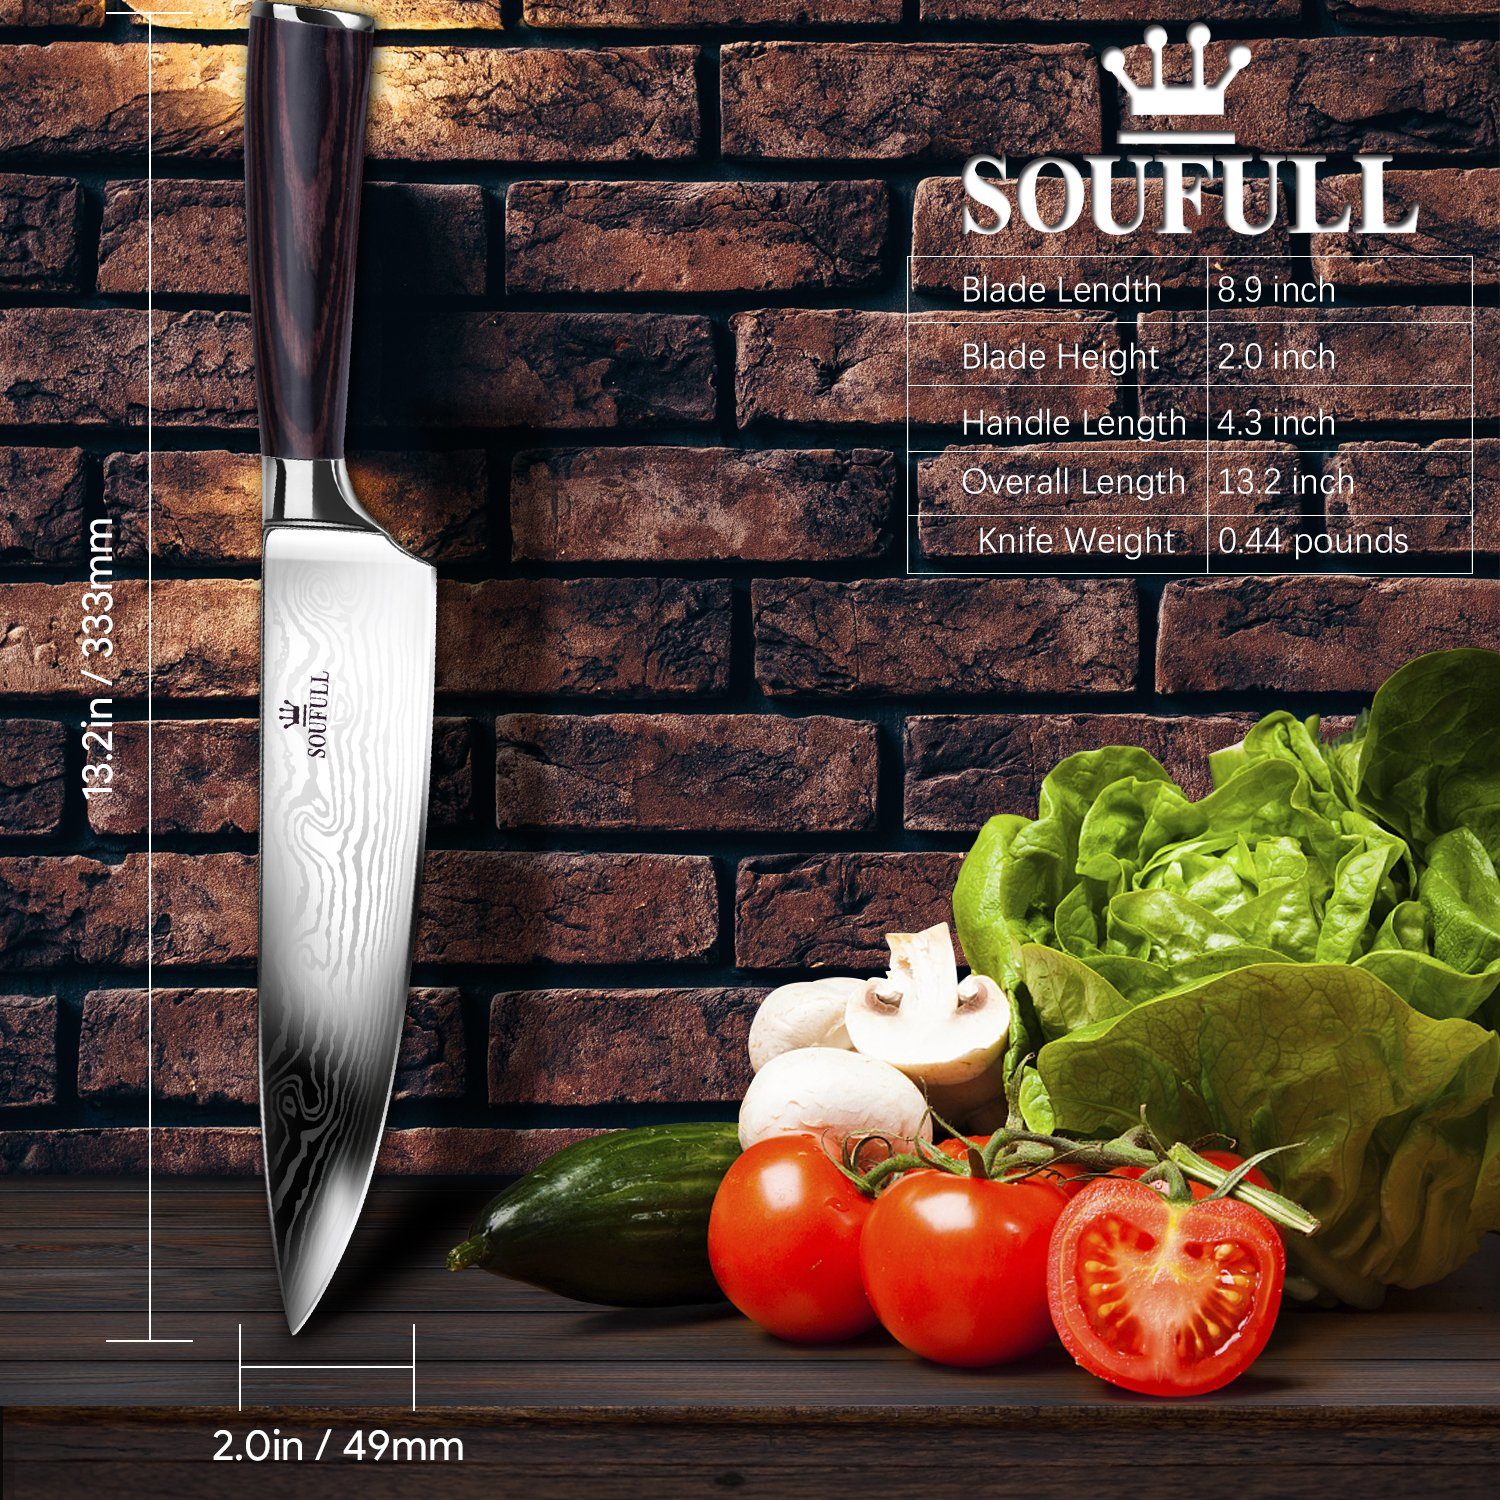 Soufull Chef Knife 8 inches Japanese Stainless Steel Gyutou Knife Professional Kitchen Knife with Ergonomic Handle by Soufull (Image #4)